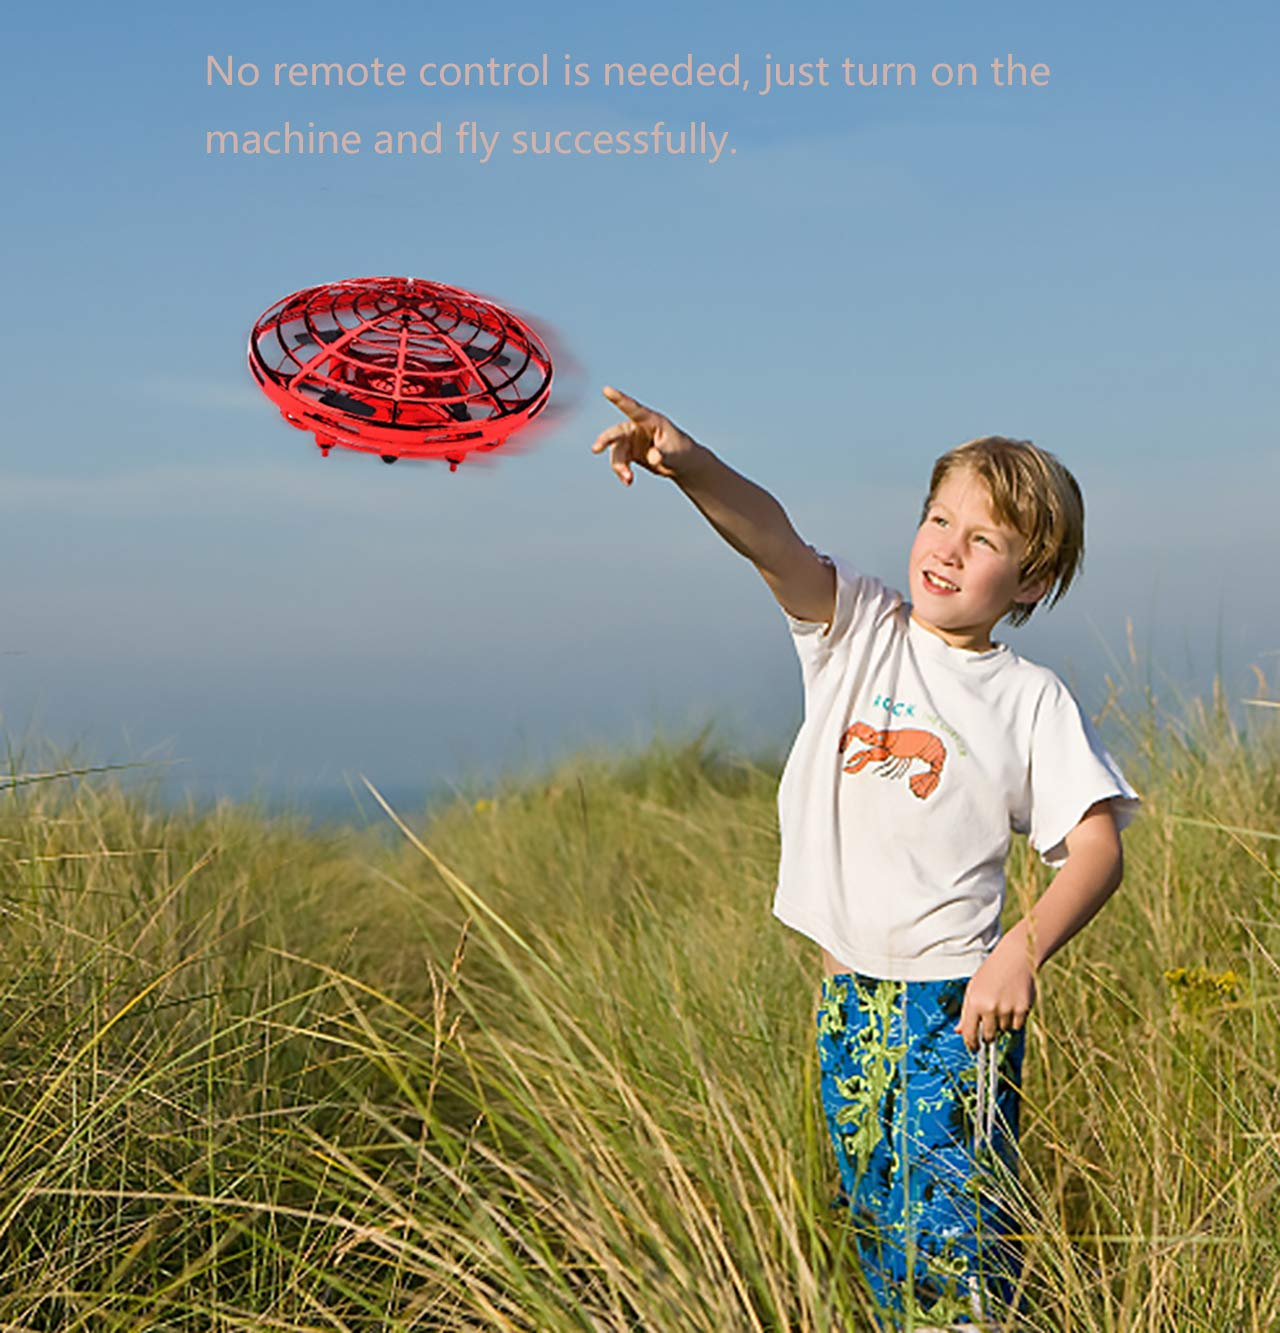 MuD-A Flying Ball Toy Drones,Hand Operated Drones for Kids or Adults - Scoot Flying Ball Drone,with 360°Rotating and Flashing LED Lights Mini Drone,for Boys and Girls, Kids Gifts (Red) by MuD-A (Image #7)